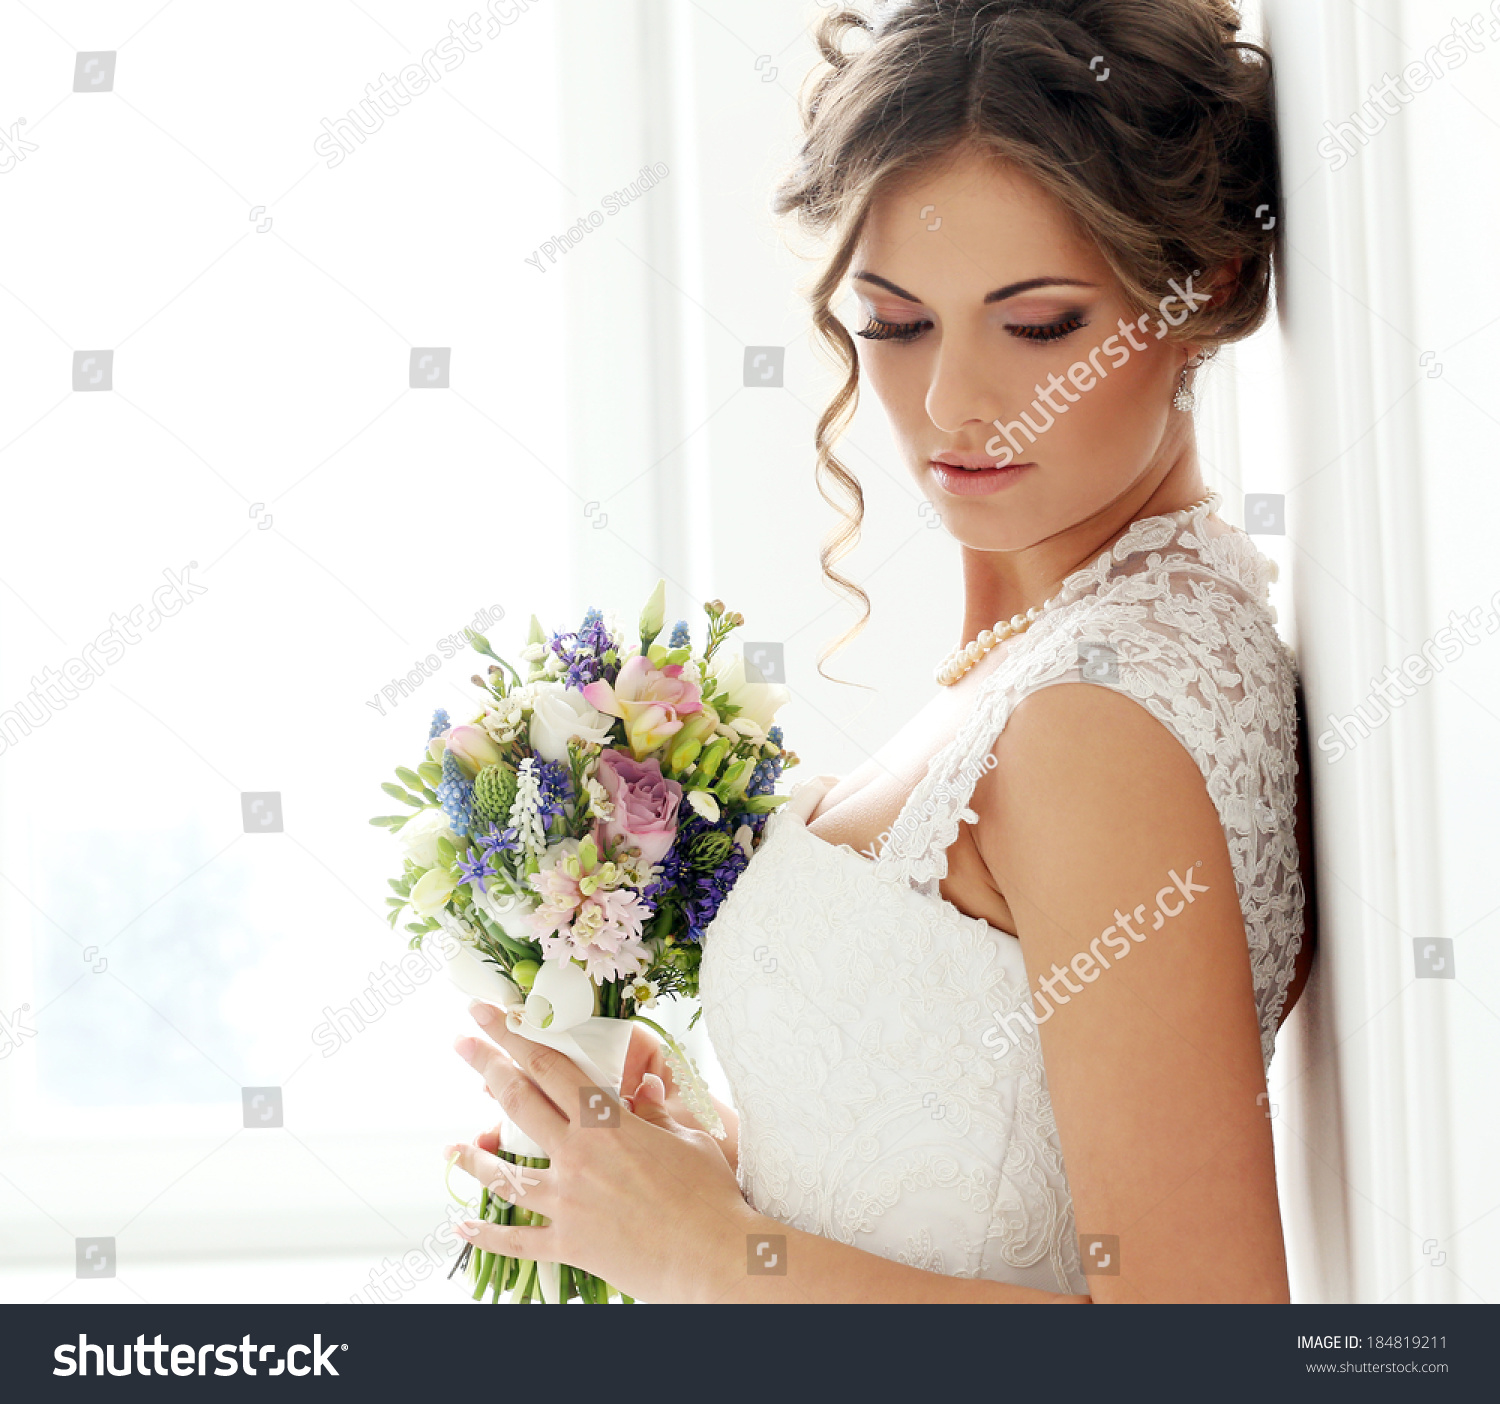 Affiliates Shutterstock Beautiful Bride Photos 92